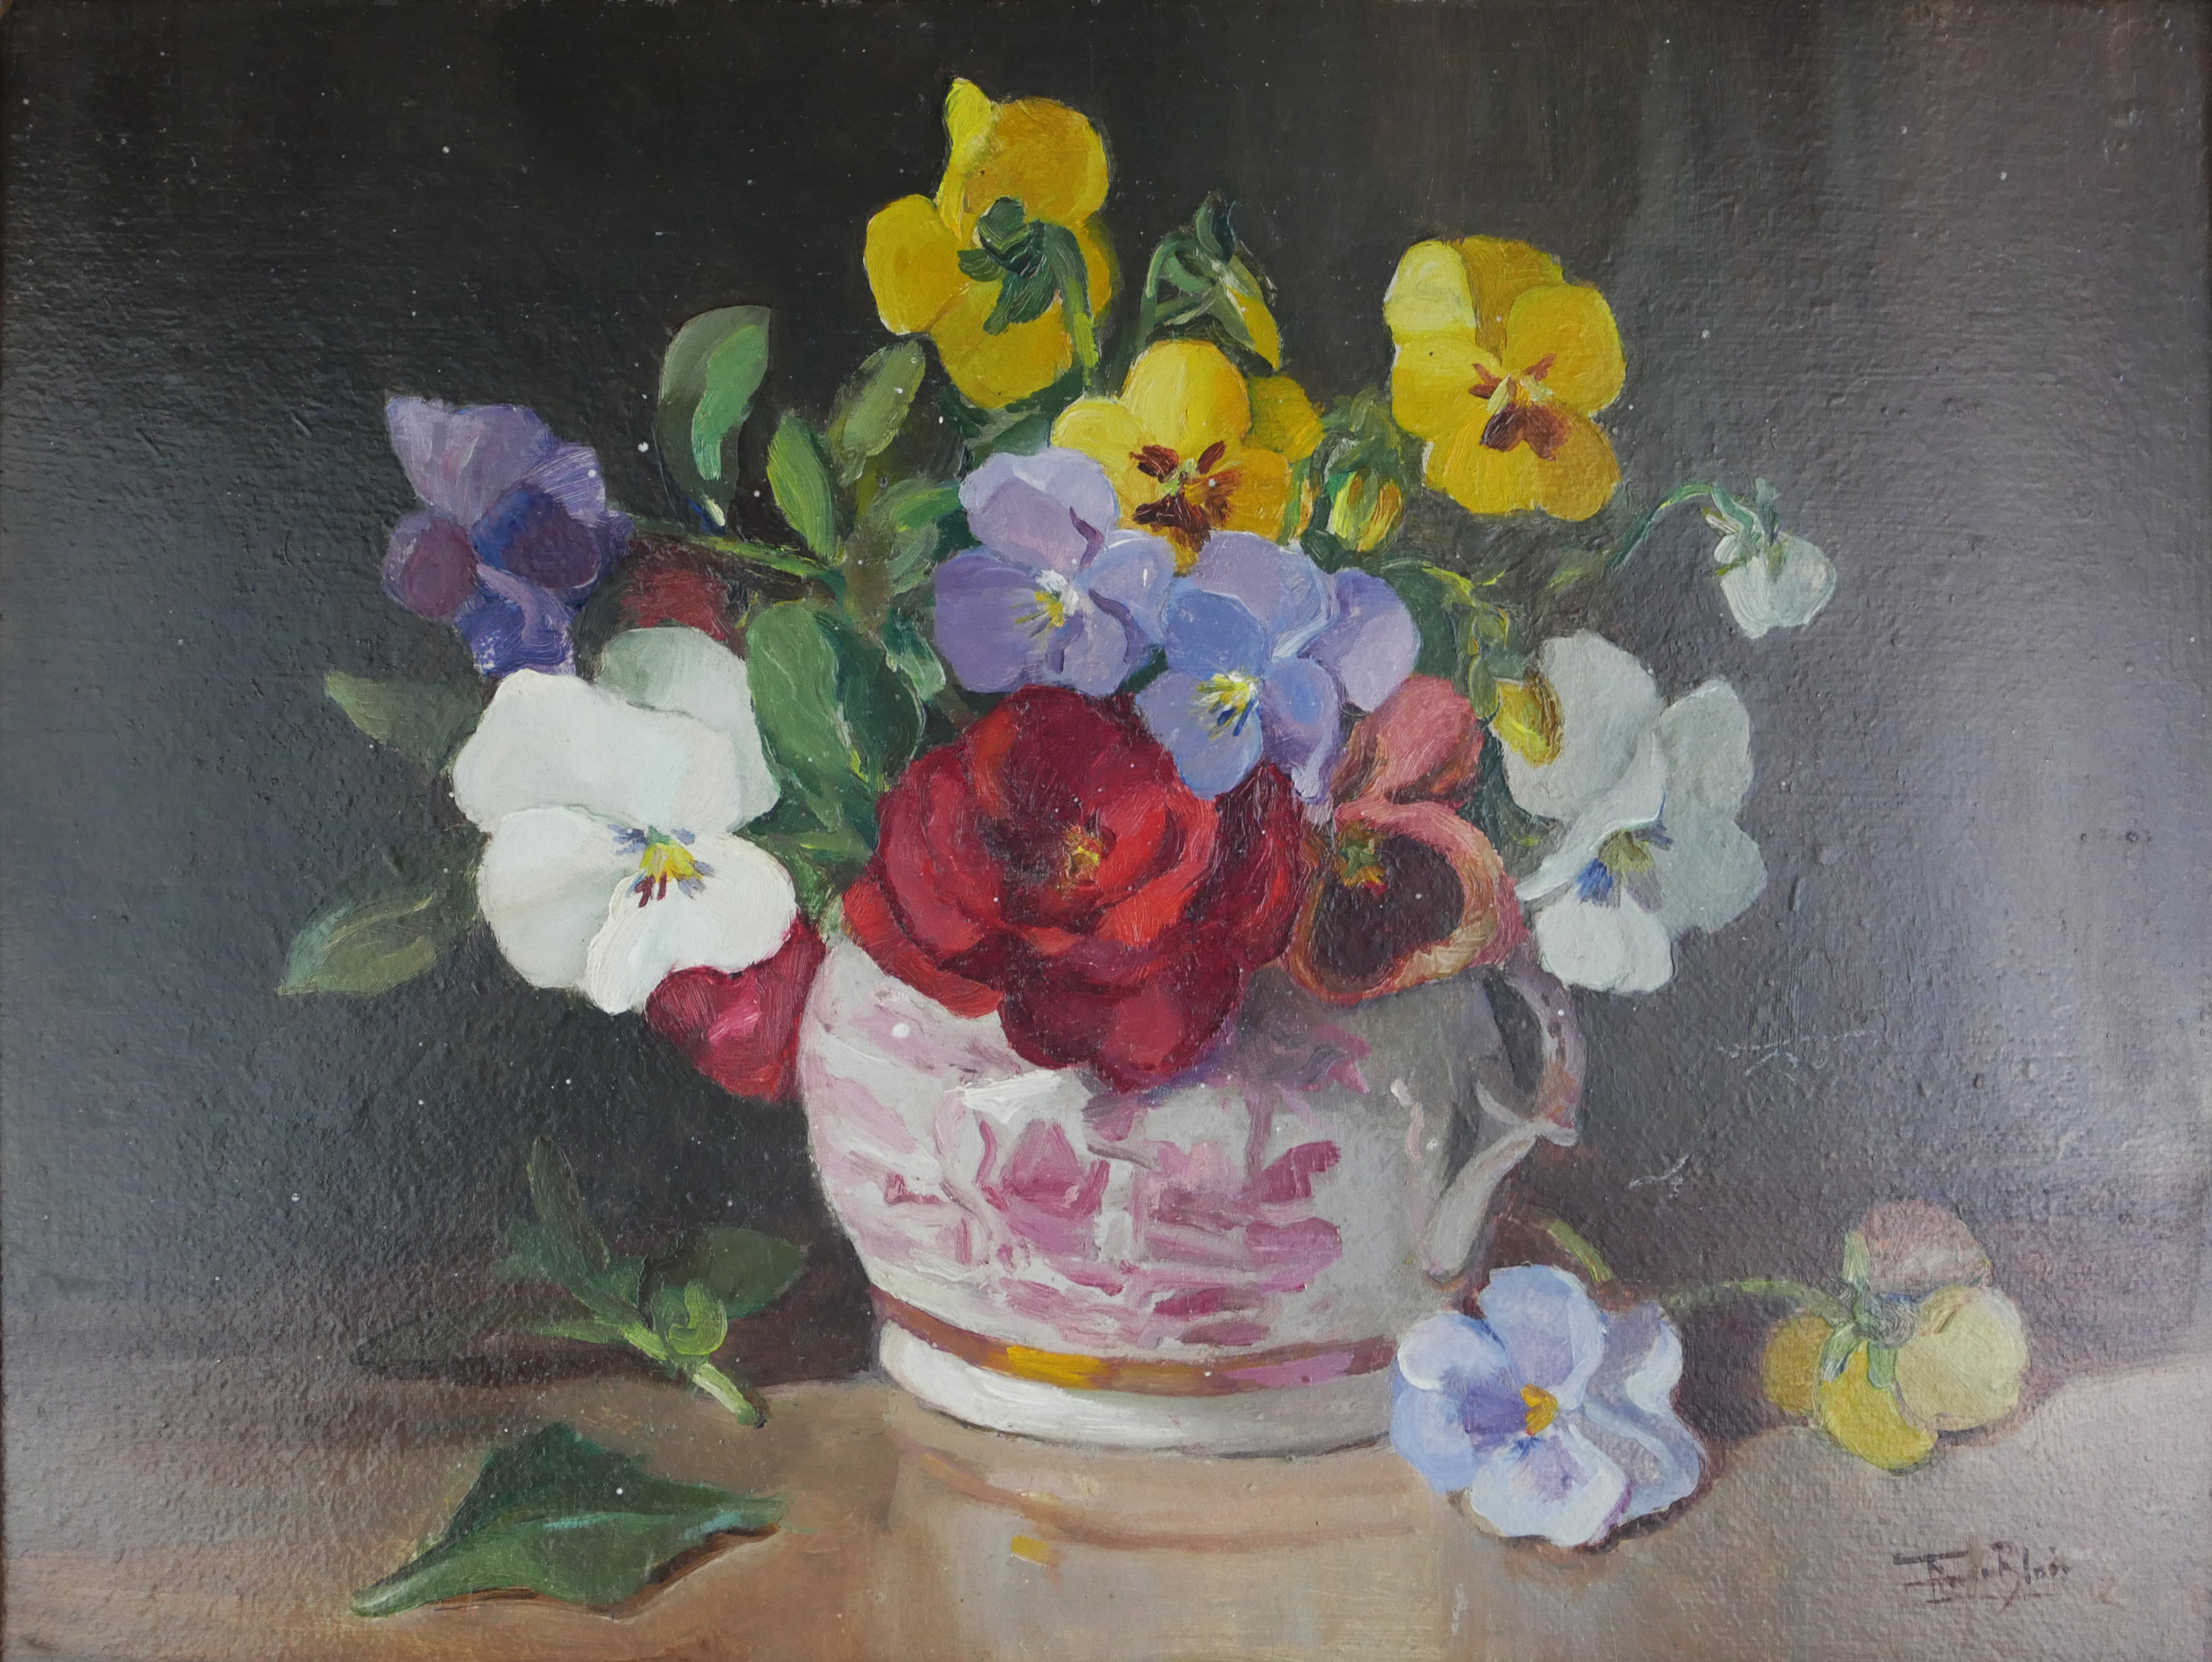 FLAVIA BLOIS (LADY BURNTWOOD), 1914 - 1980, OIL ON BOARD Still life, flowers in a lustre ware jug, - Image 2 of 4